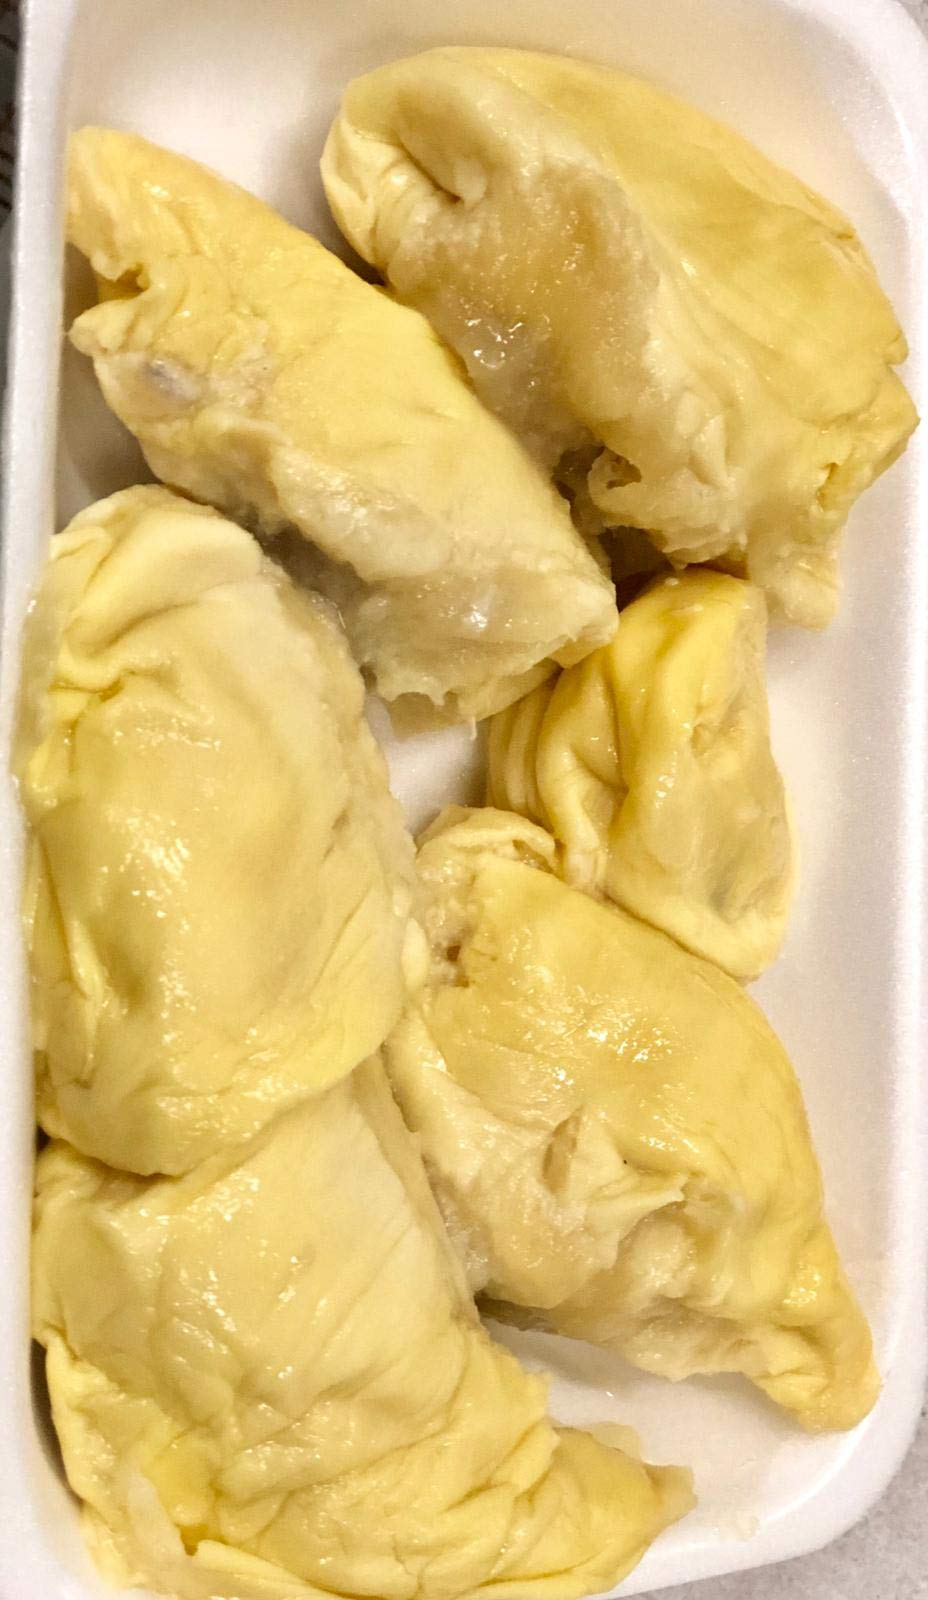 Frozen Durian Monthong - 21oz (Pack of 6) by Orange Grocer (Image #1)